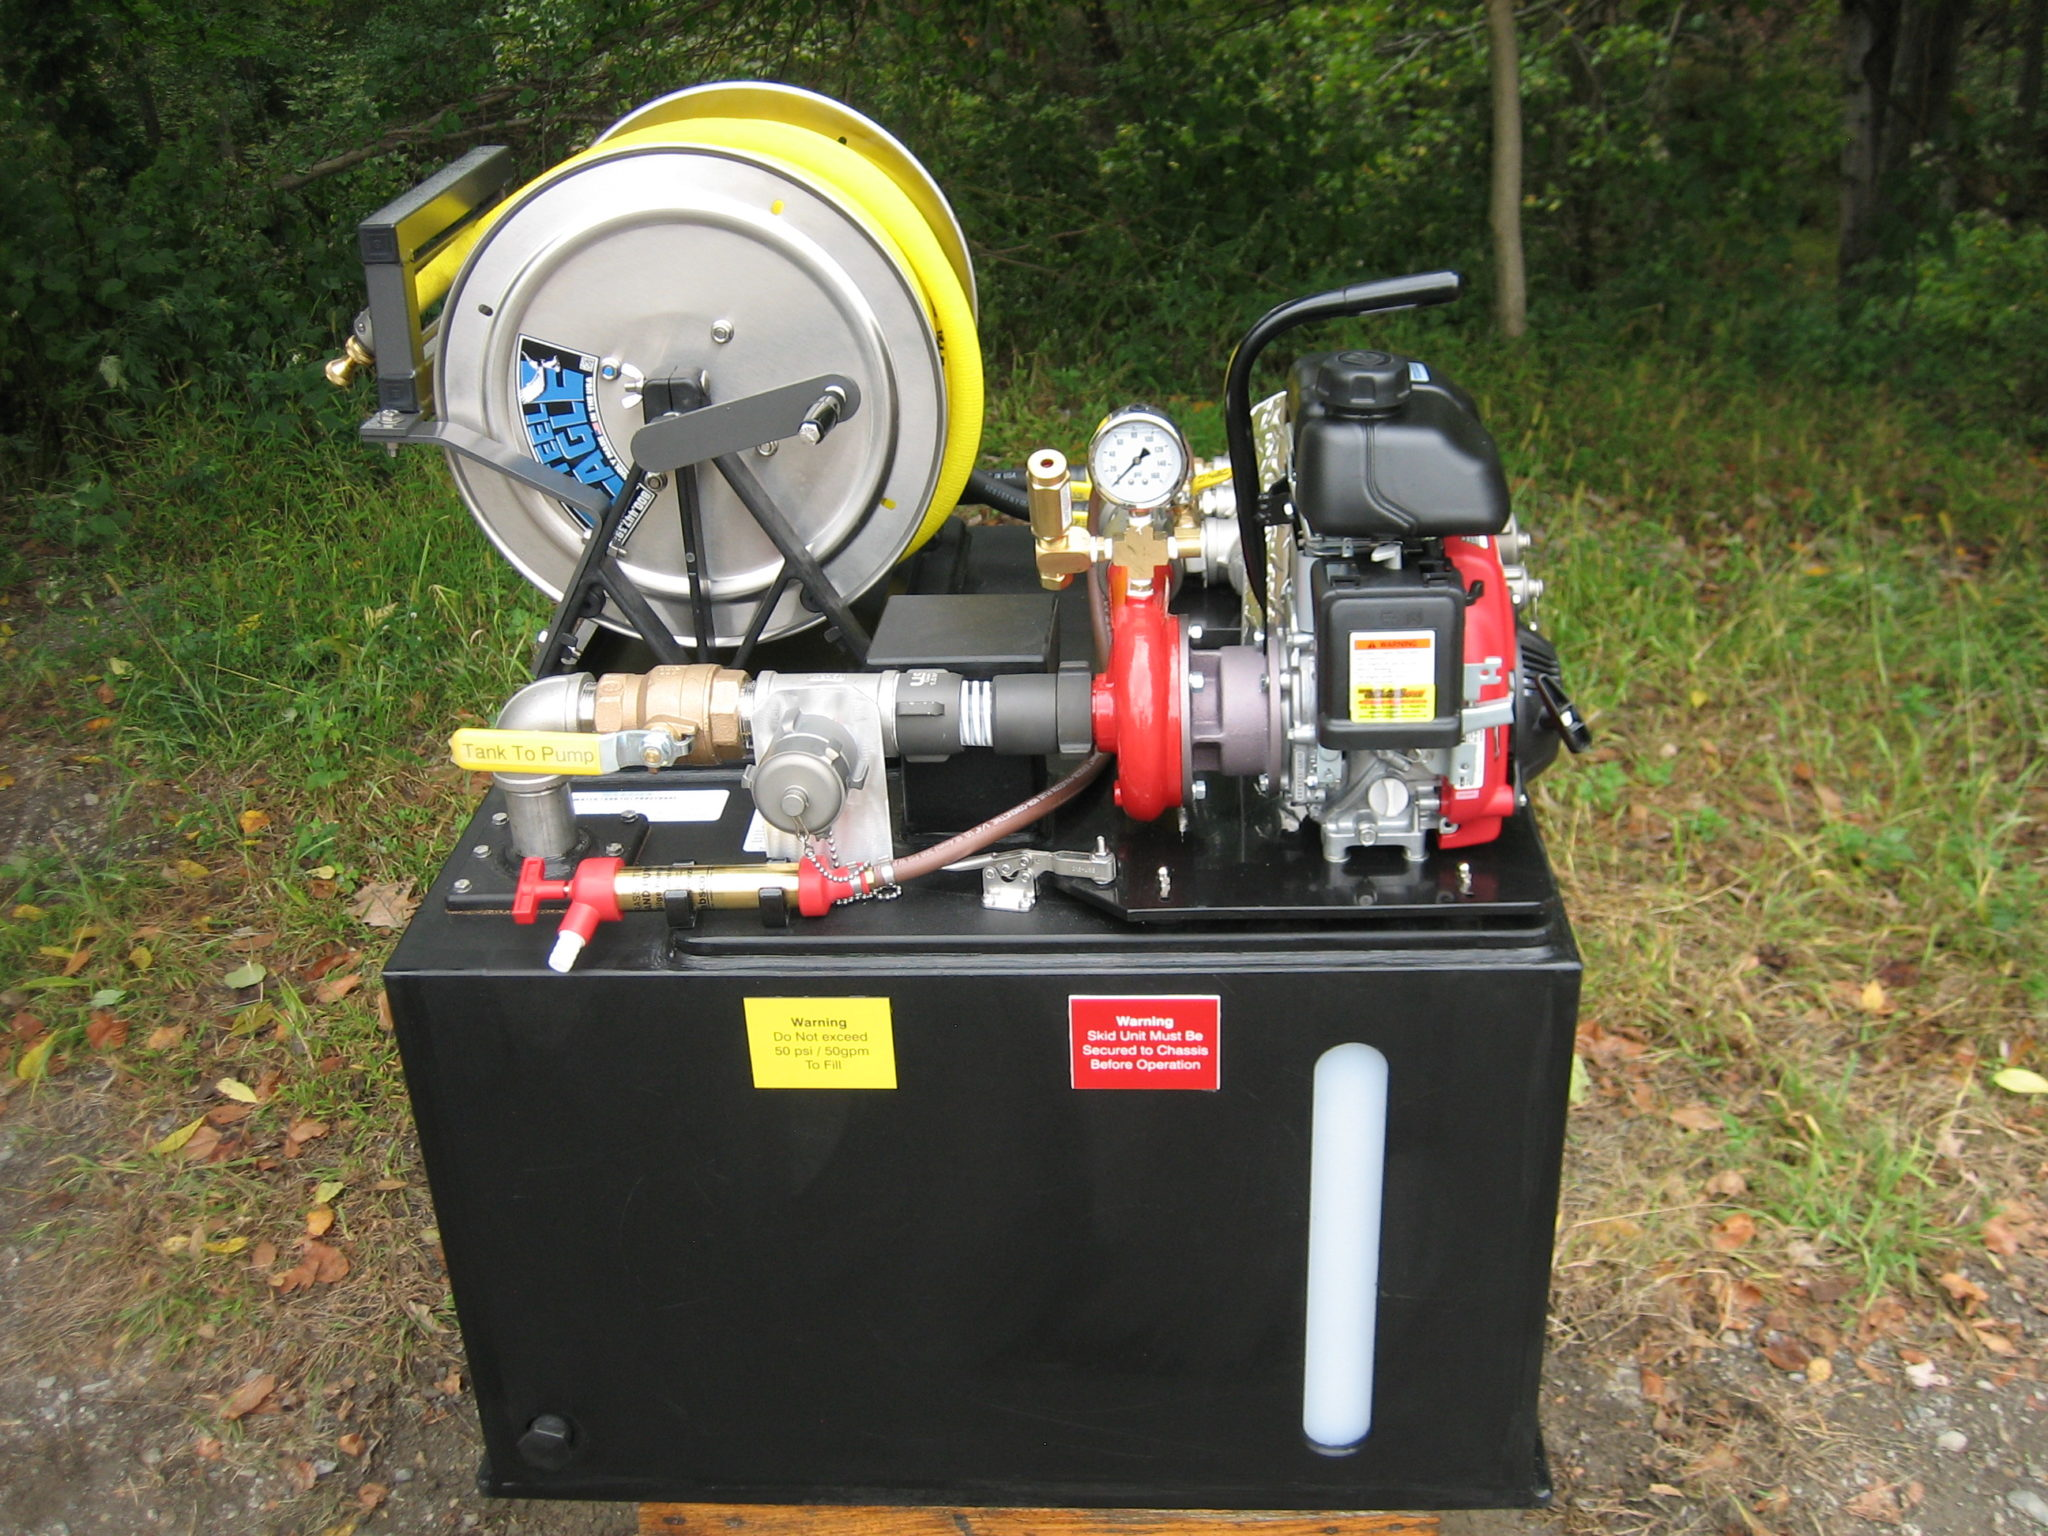 <p><strong>2</strong><br><em>The Simple 7 skid unit side view. Here you can see the reel, valves and tank capacity window.</em></p>